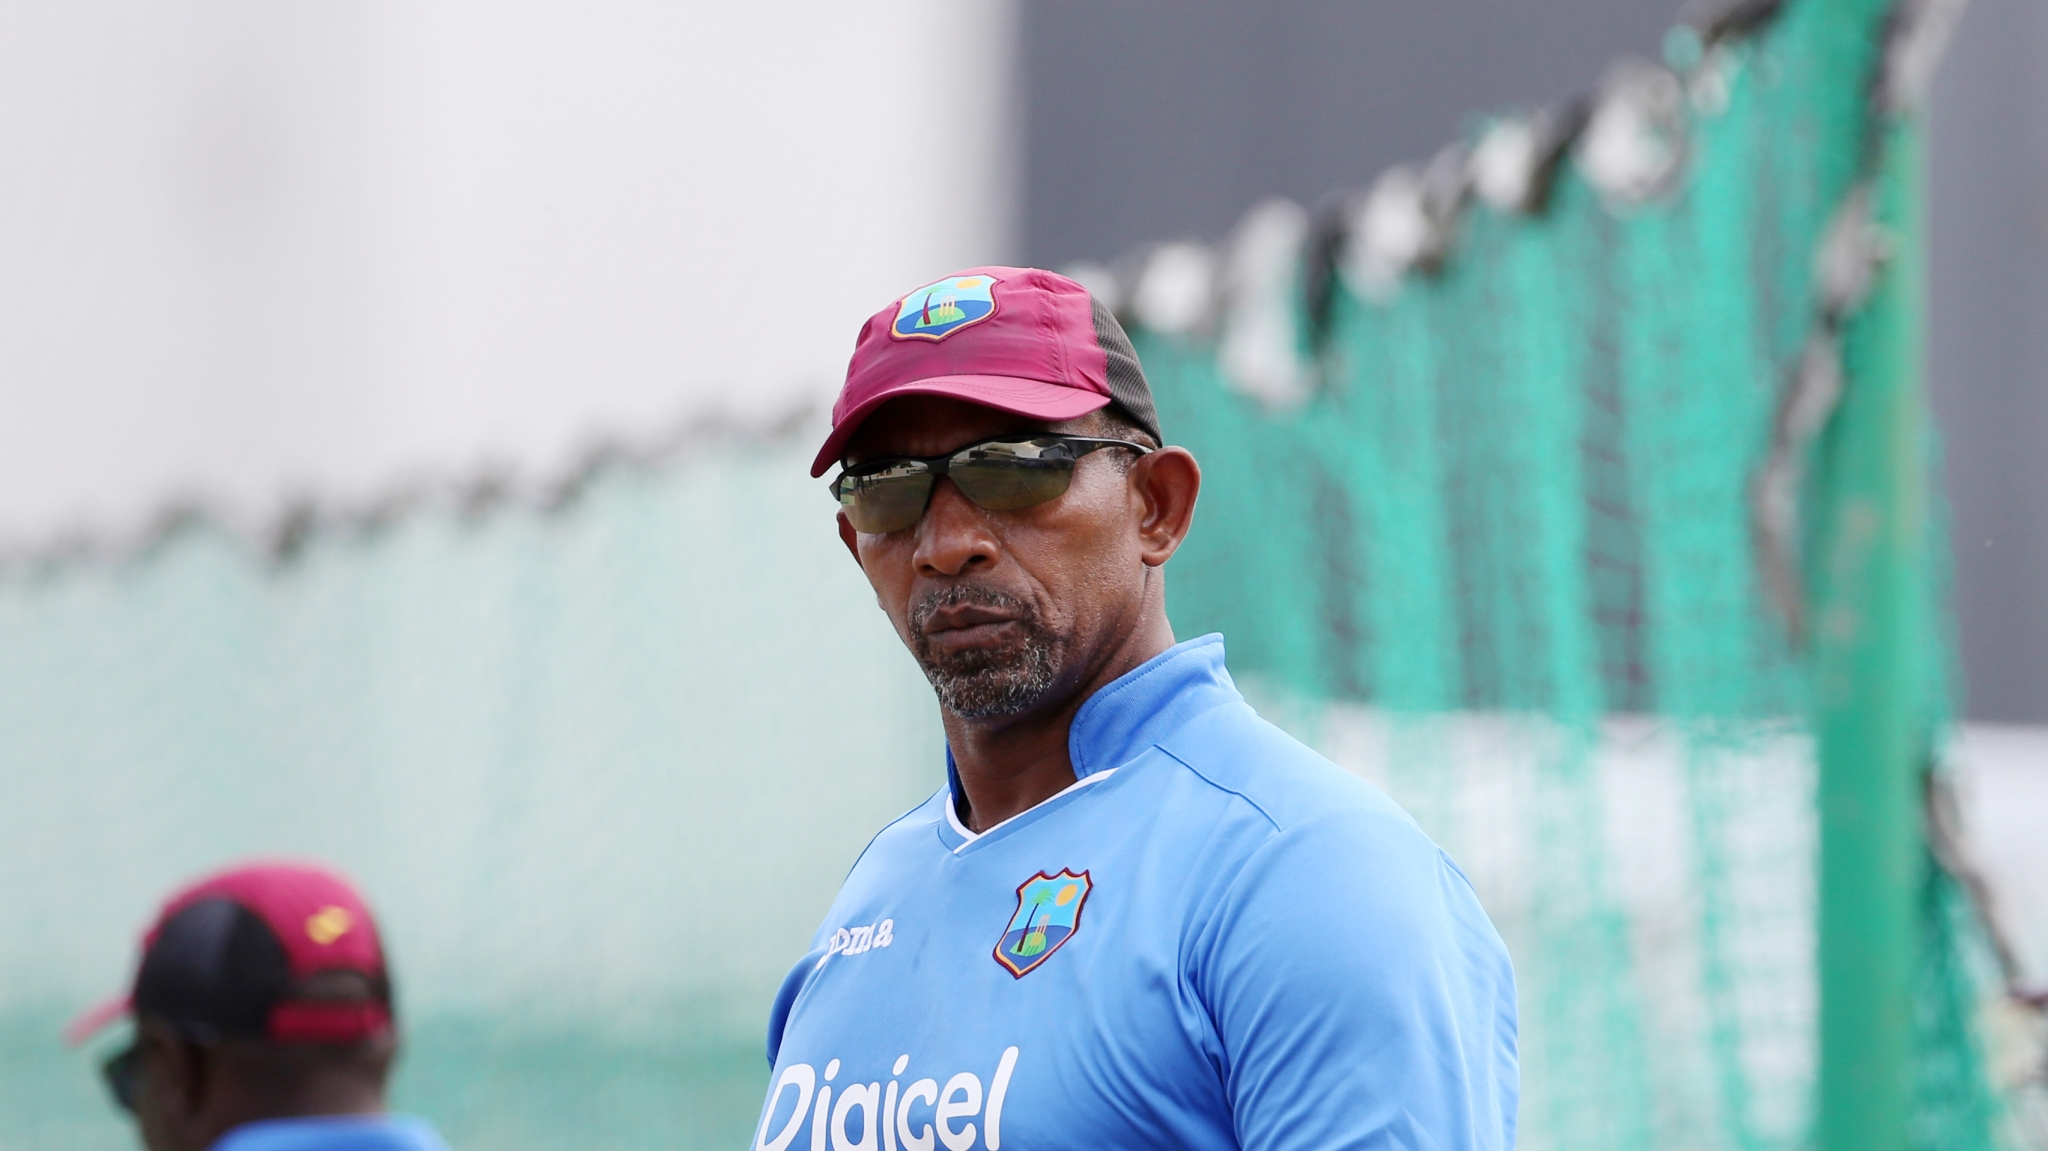 West Indies coach Phil Simmons has revealed that he was subjected to racial abuse when he played league cricket in England during his playing days.